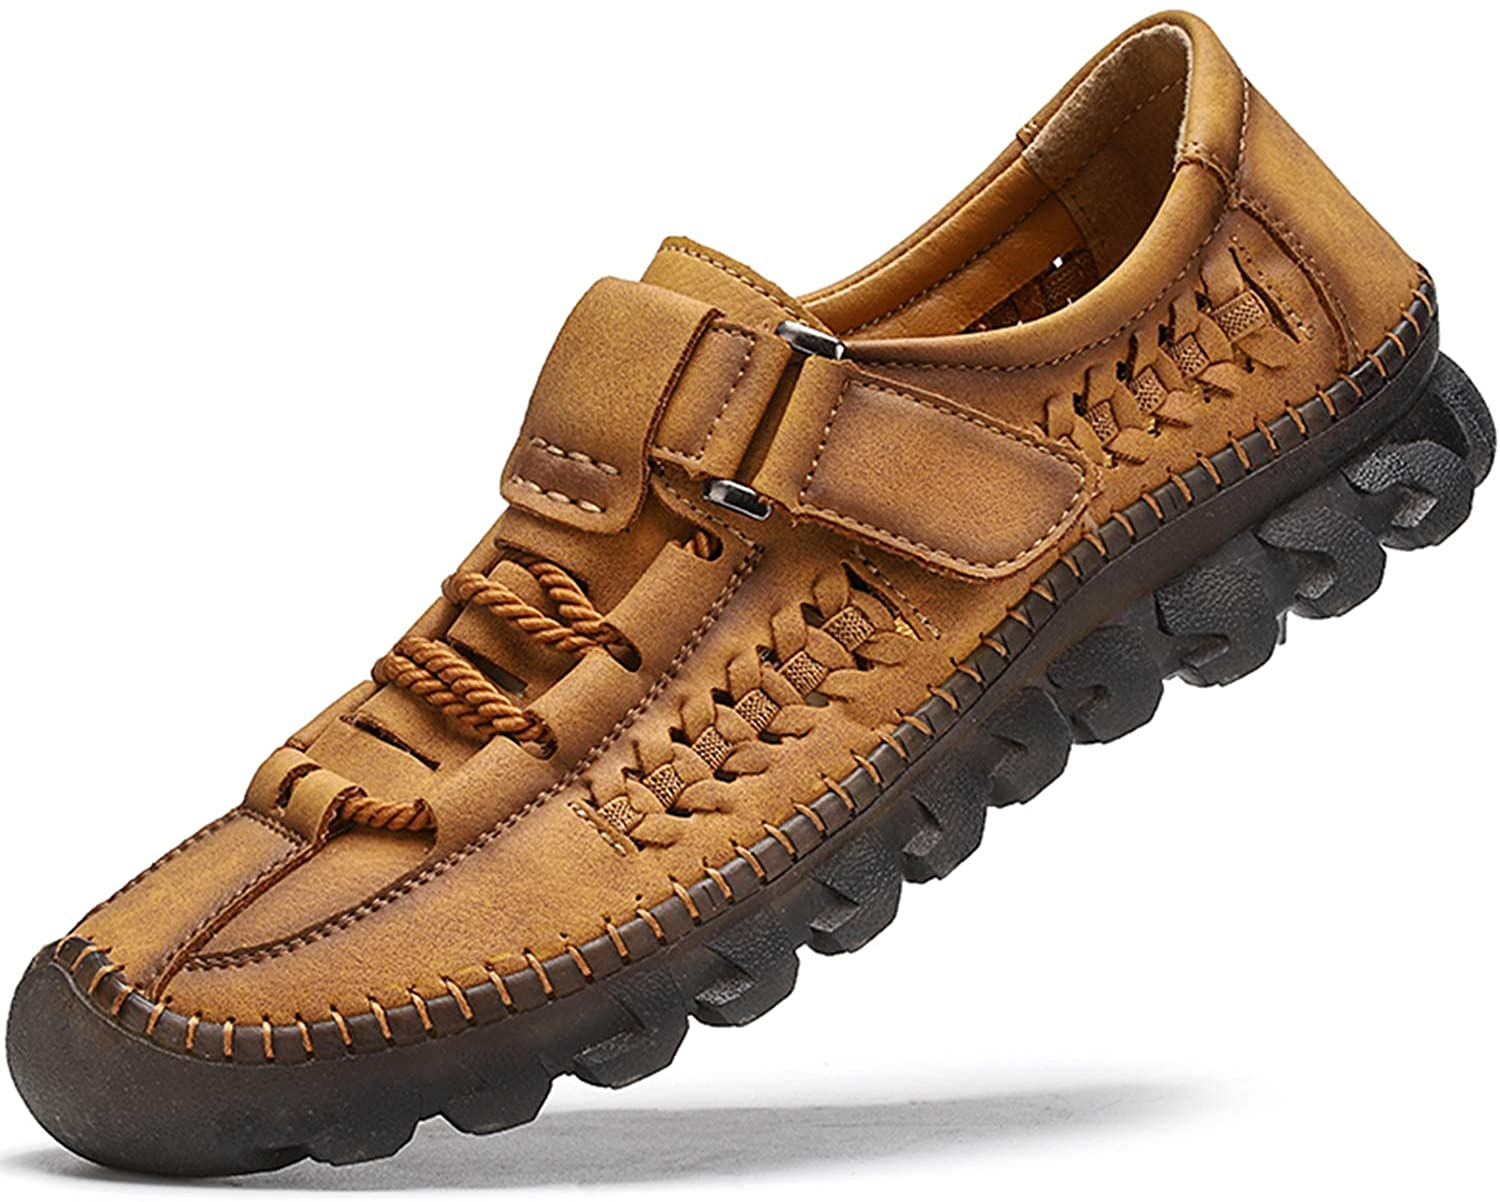 Feichi Mens Casual Shoes Slip-On Loafer Handmade Leather Walking Boat Shoes Breathable Comfortable Driving Loafers